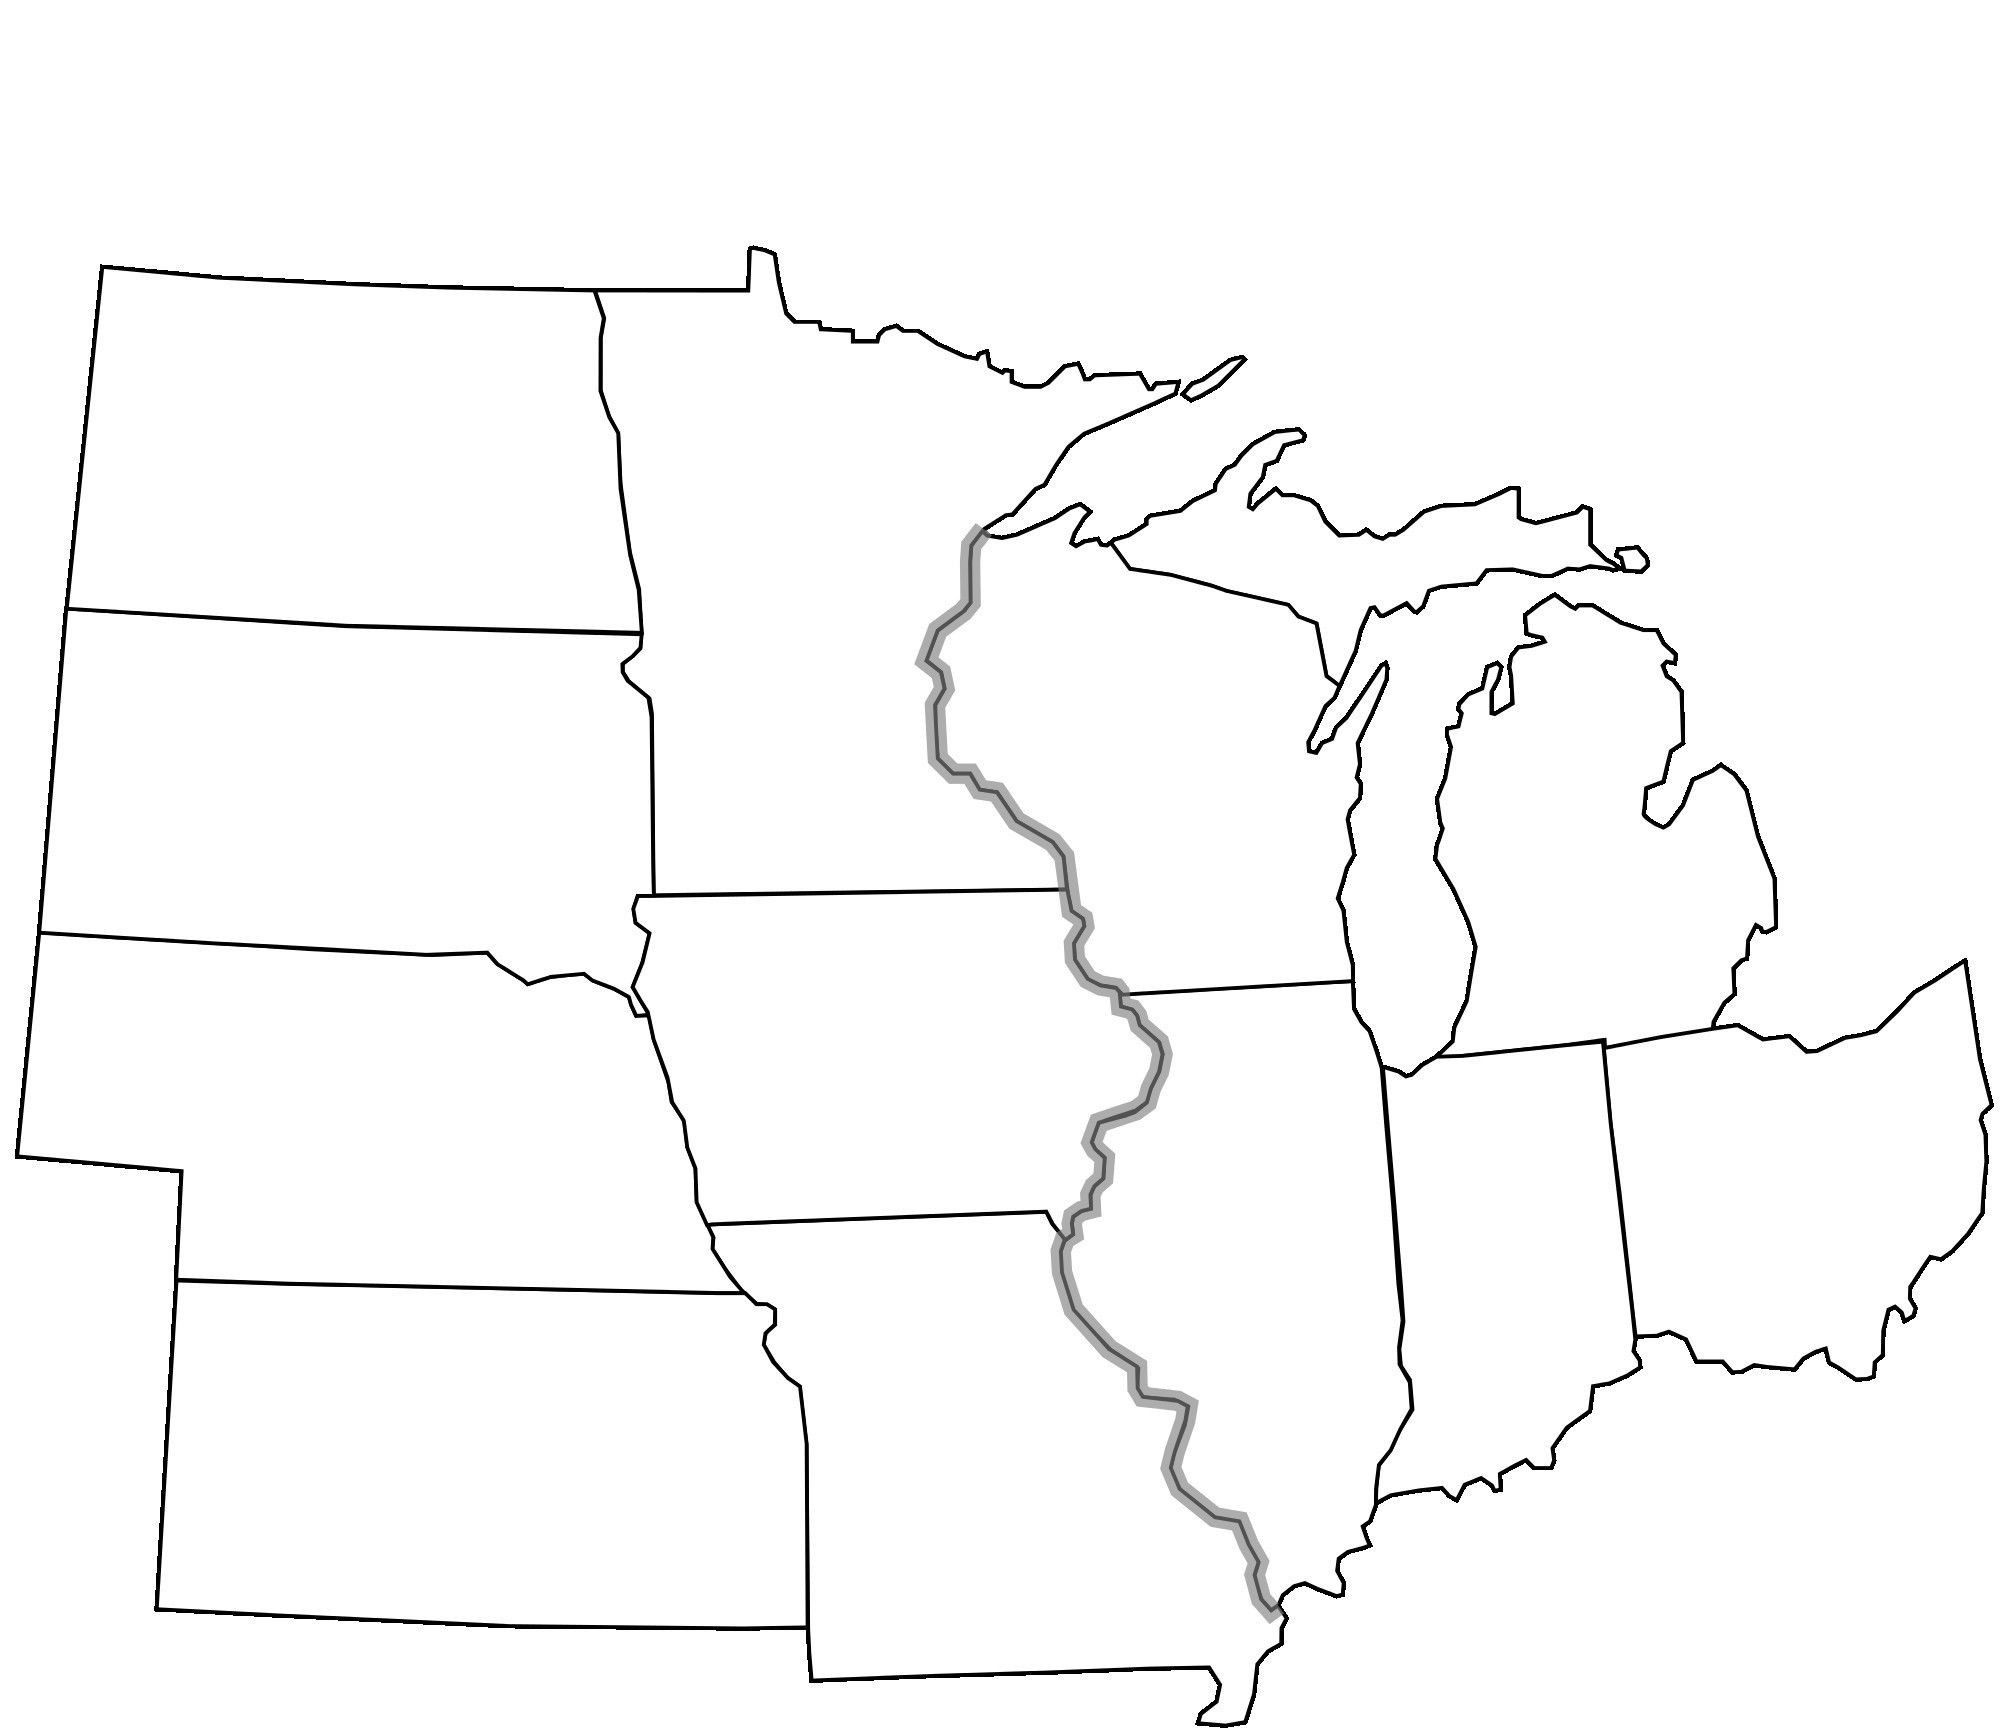 Blank Us Map Quiz Printable Us Midwest Region Map Blank Us Midwest Region Map Blank